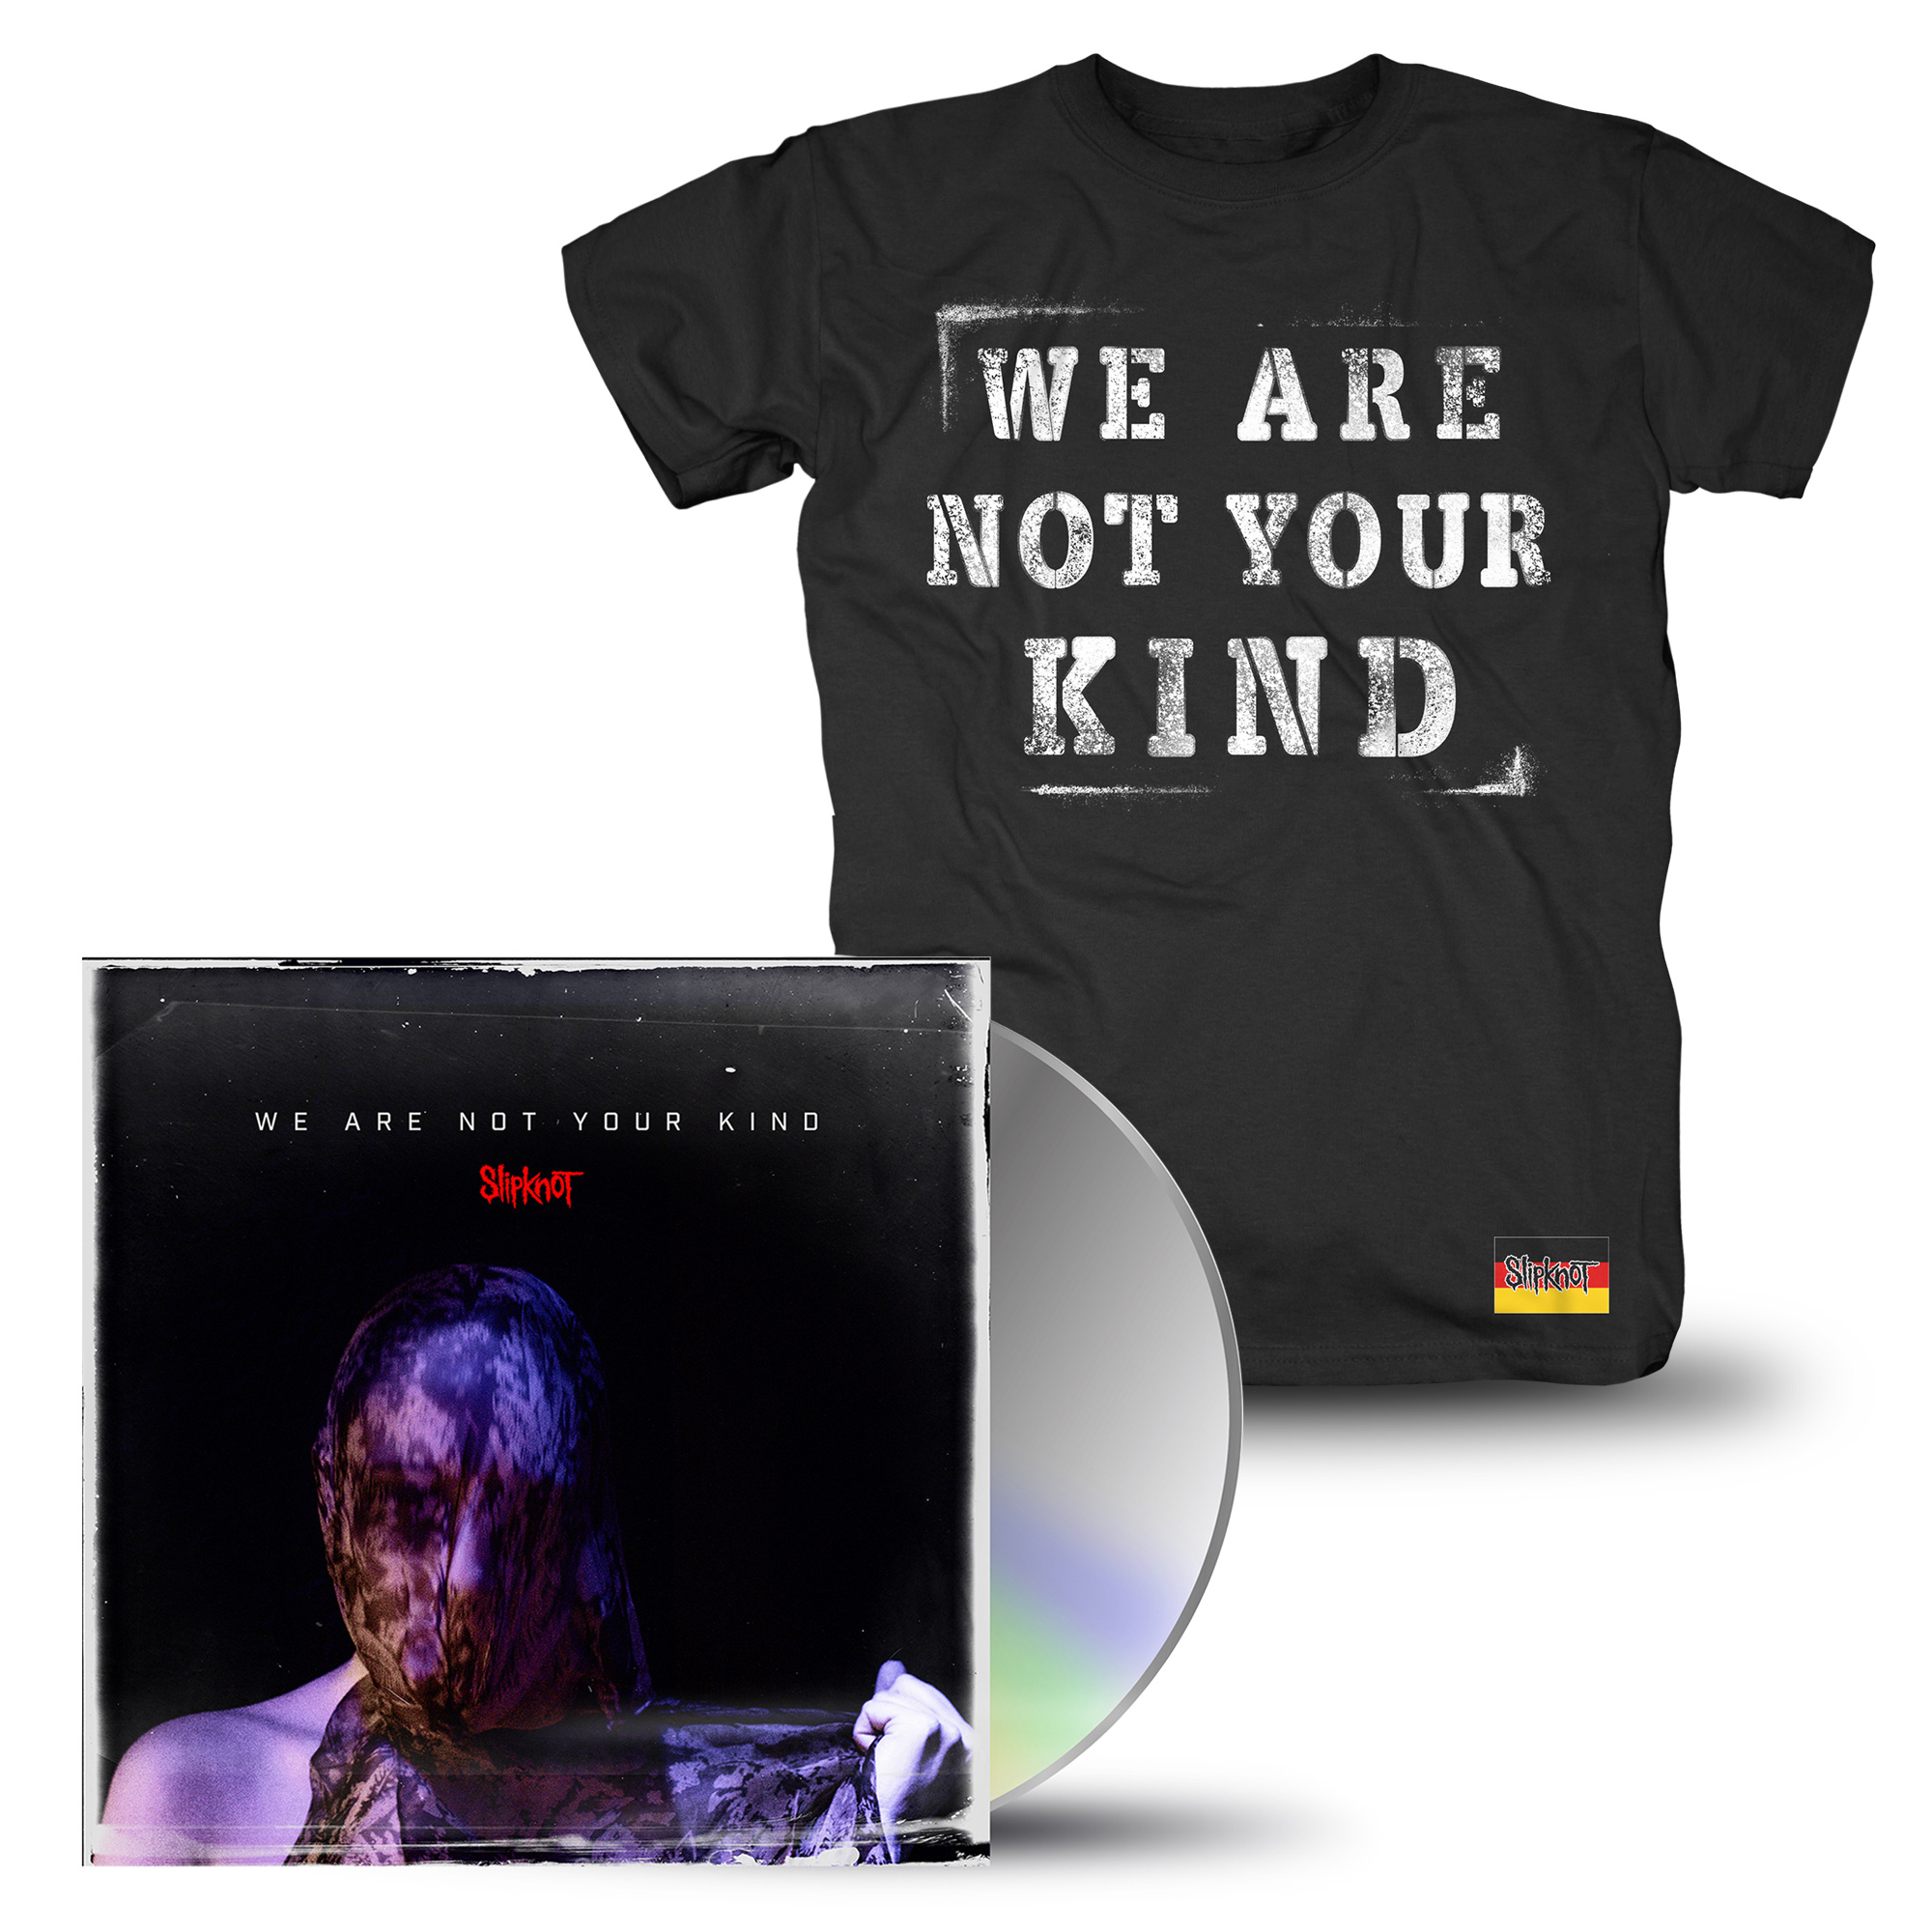 Bravado - We Are Not Your Kind (CD + T-Shirt Bundle) - Slipknot - CD